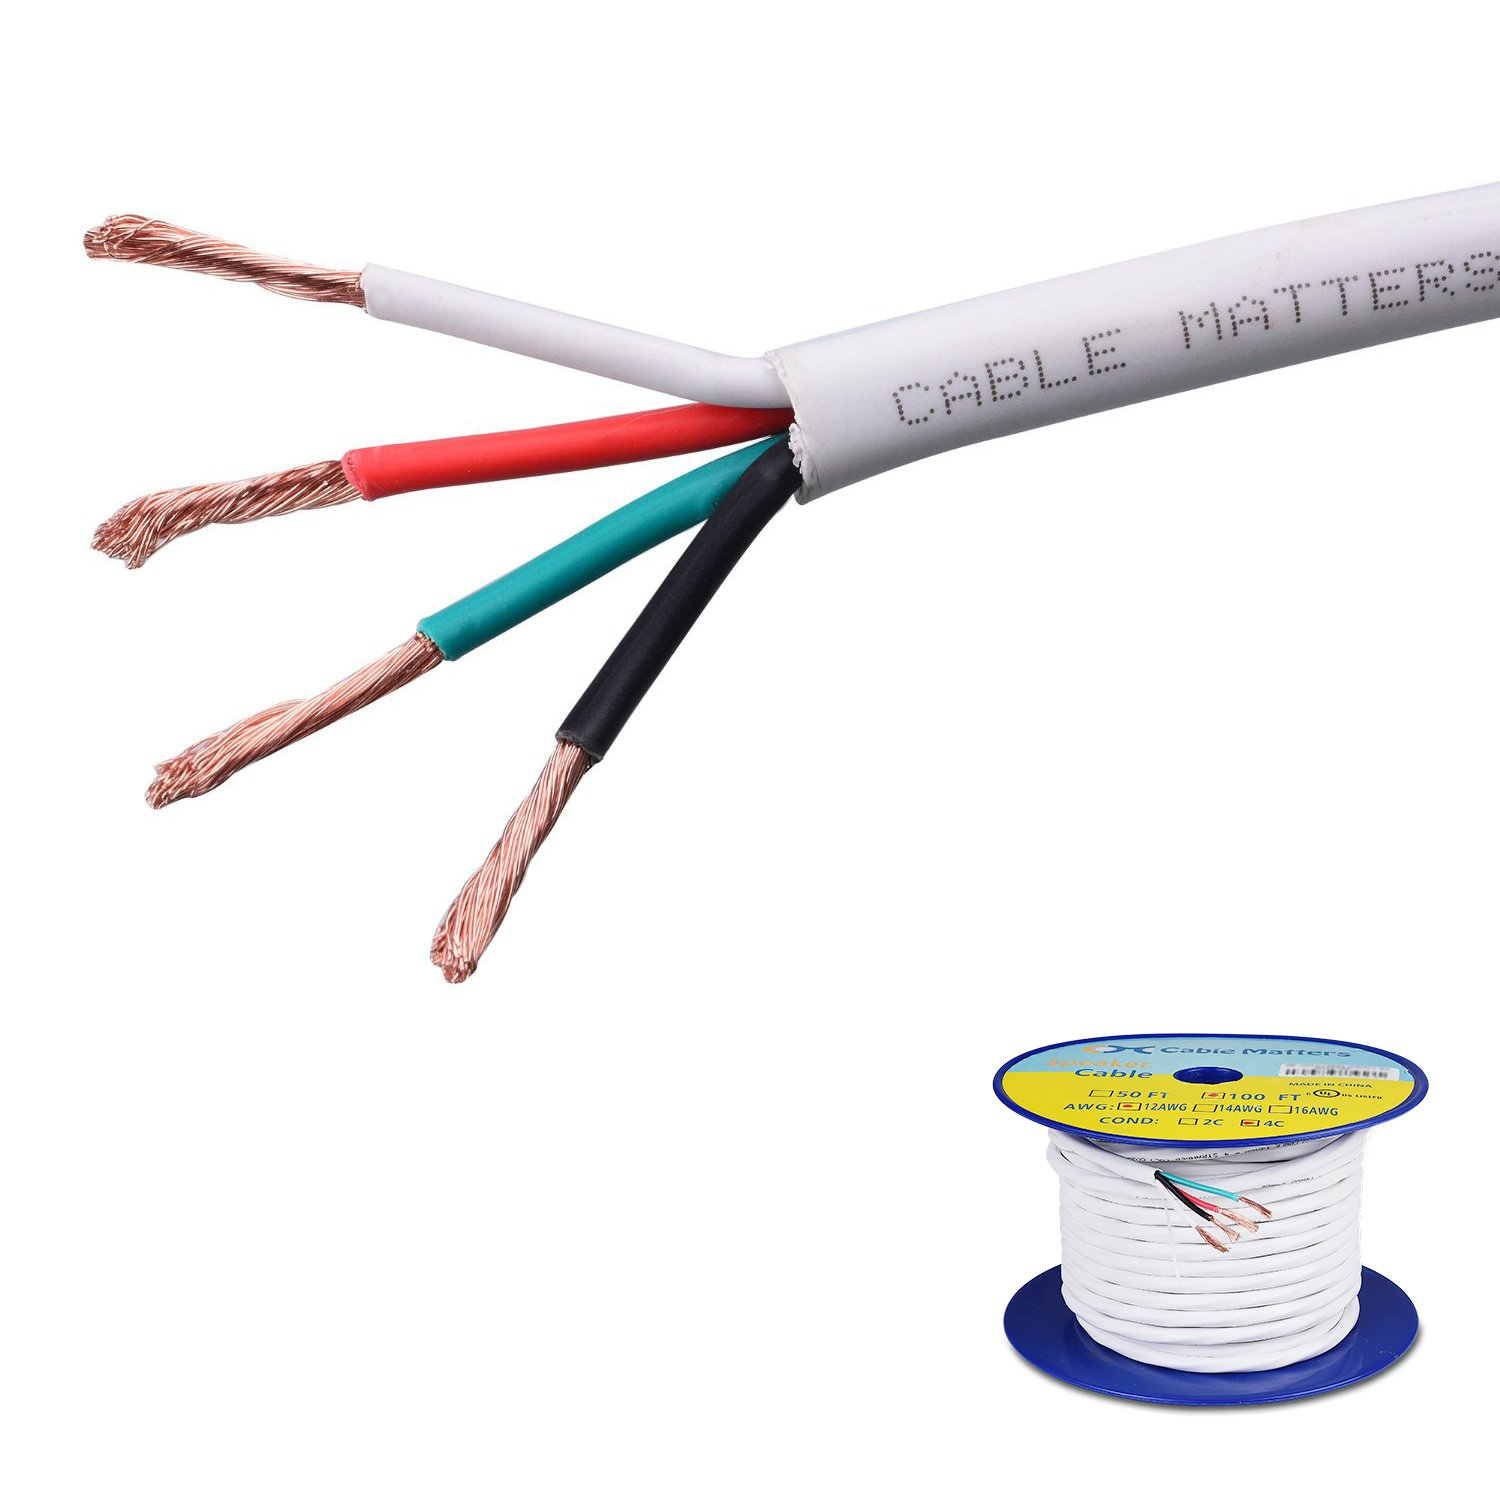 Cable Matters 12 AWG CL2 in Wall Rated Oxygen-Free Bare Copper 4 Conductor Speaker Wire (Speaker Cable) 100 Feet